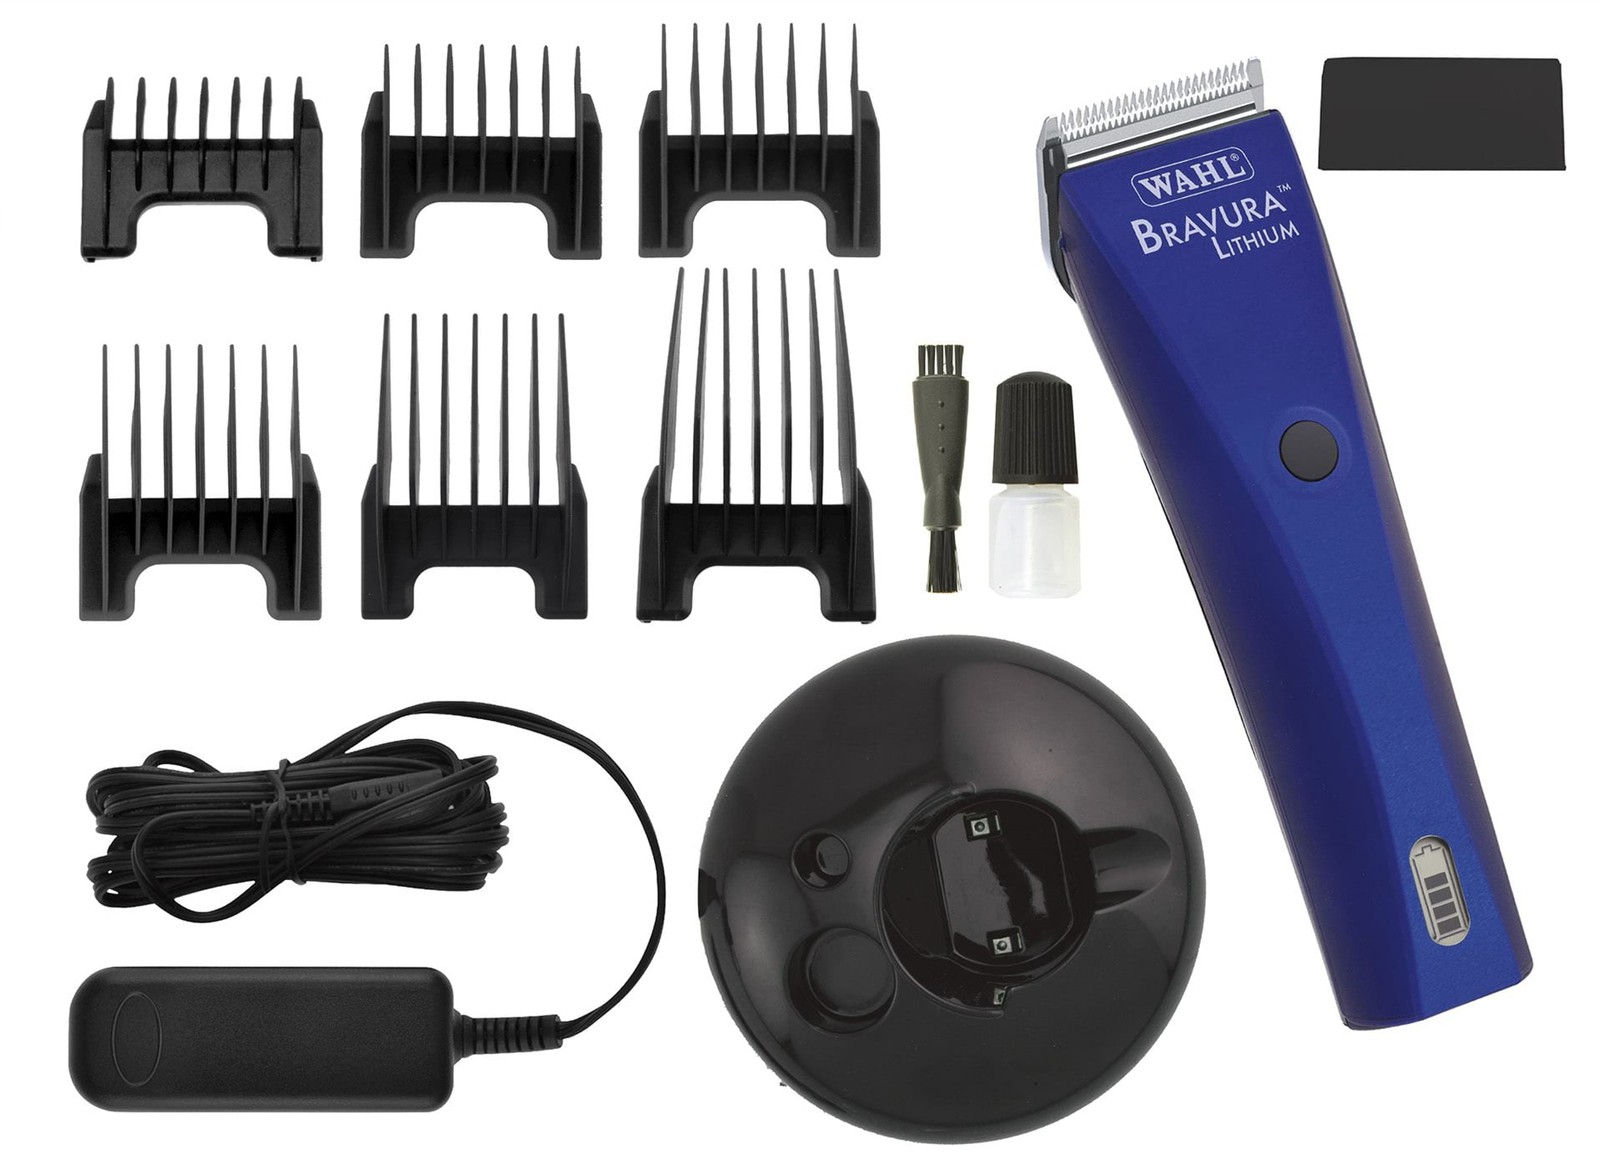 wahl-1870-0482-bravura-midnight-blue 2